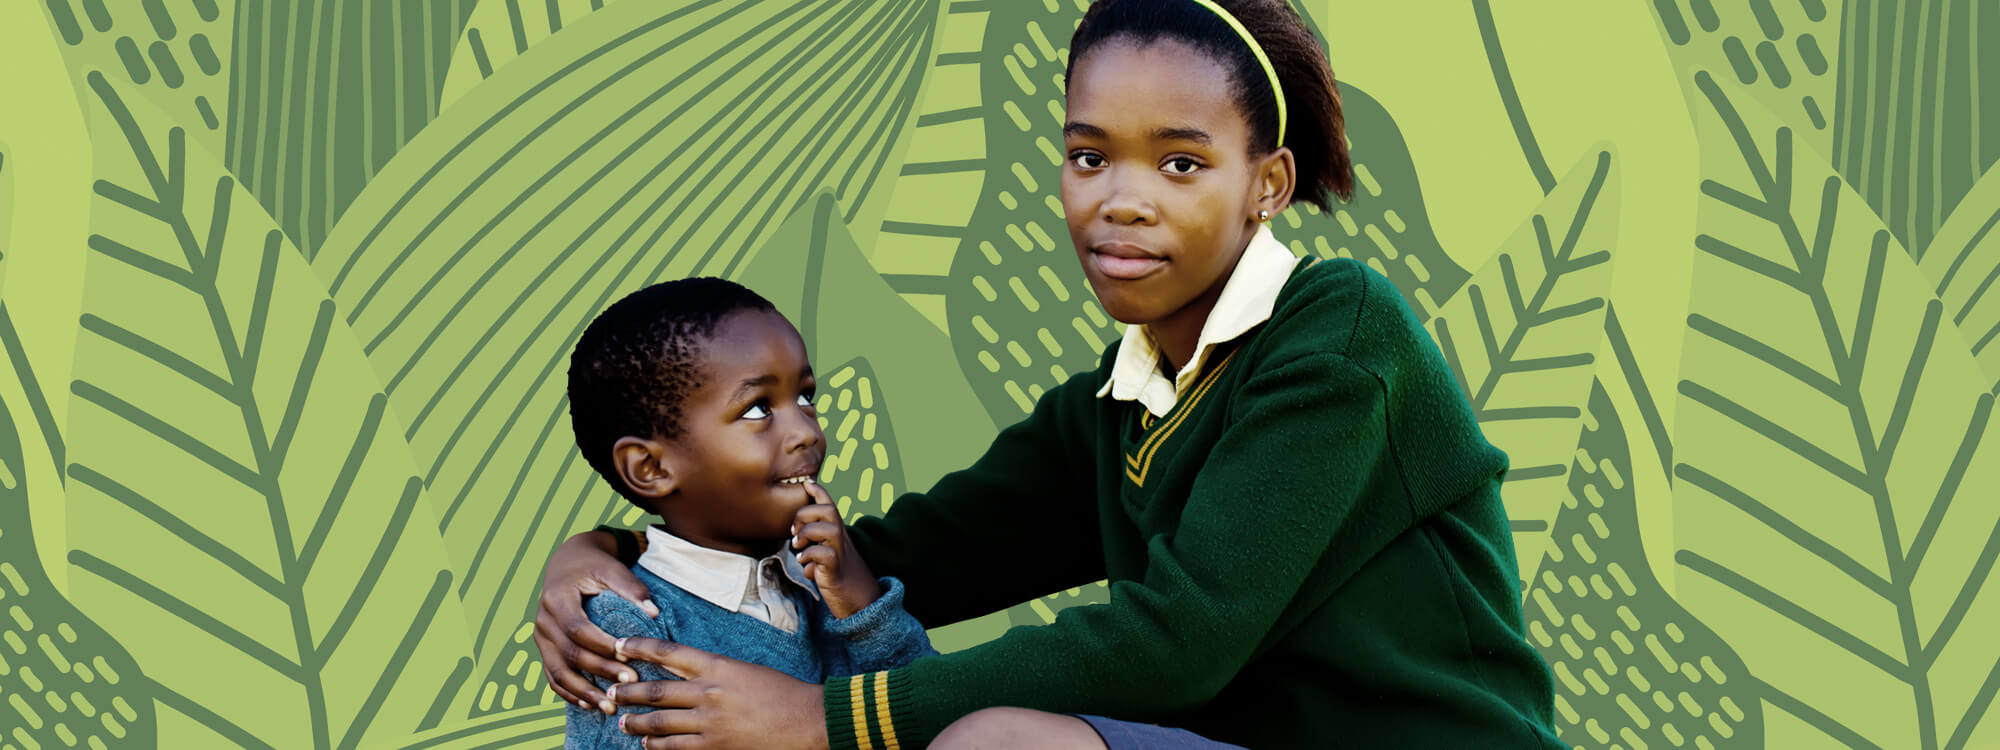 Change Projects - Sustainability Starts with Teachers - South Africa